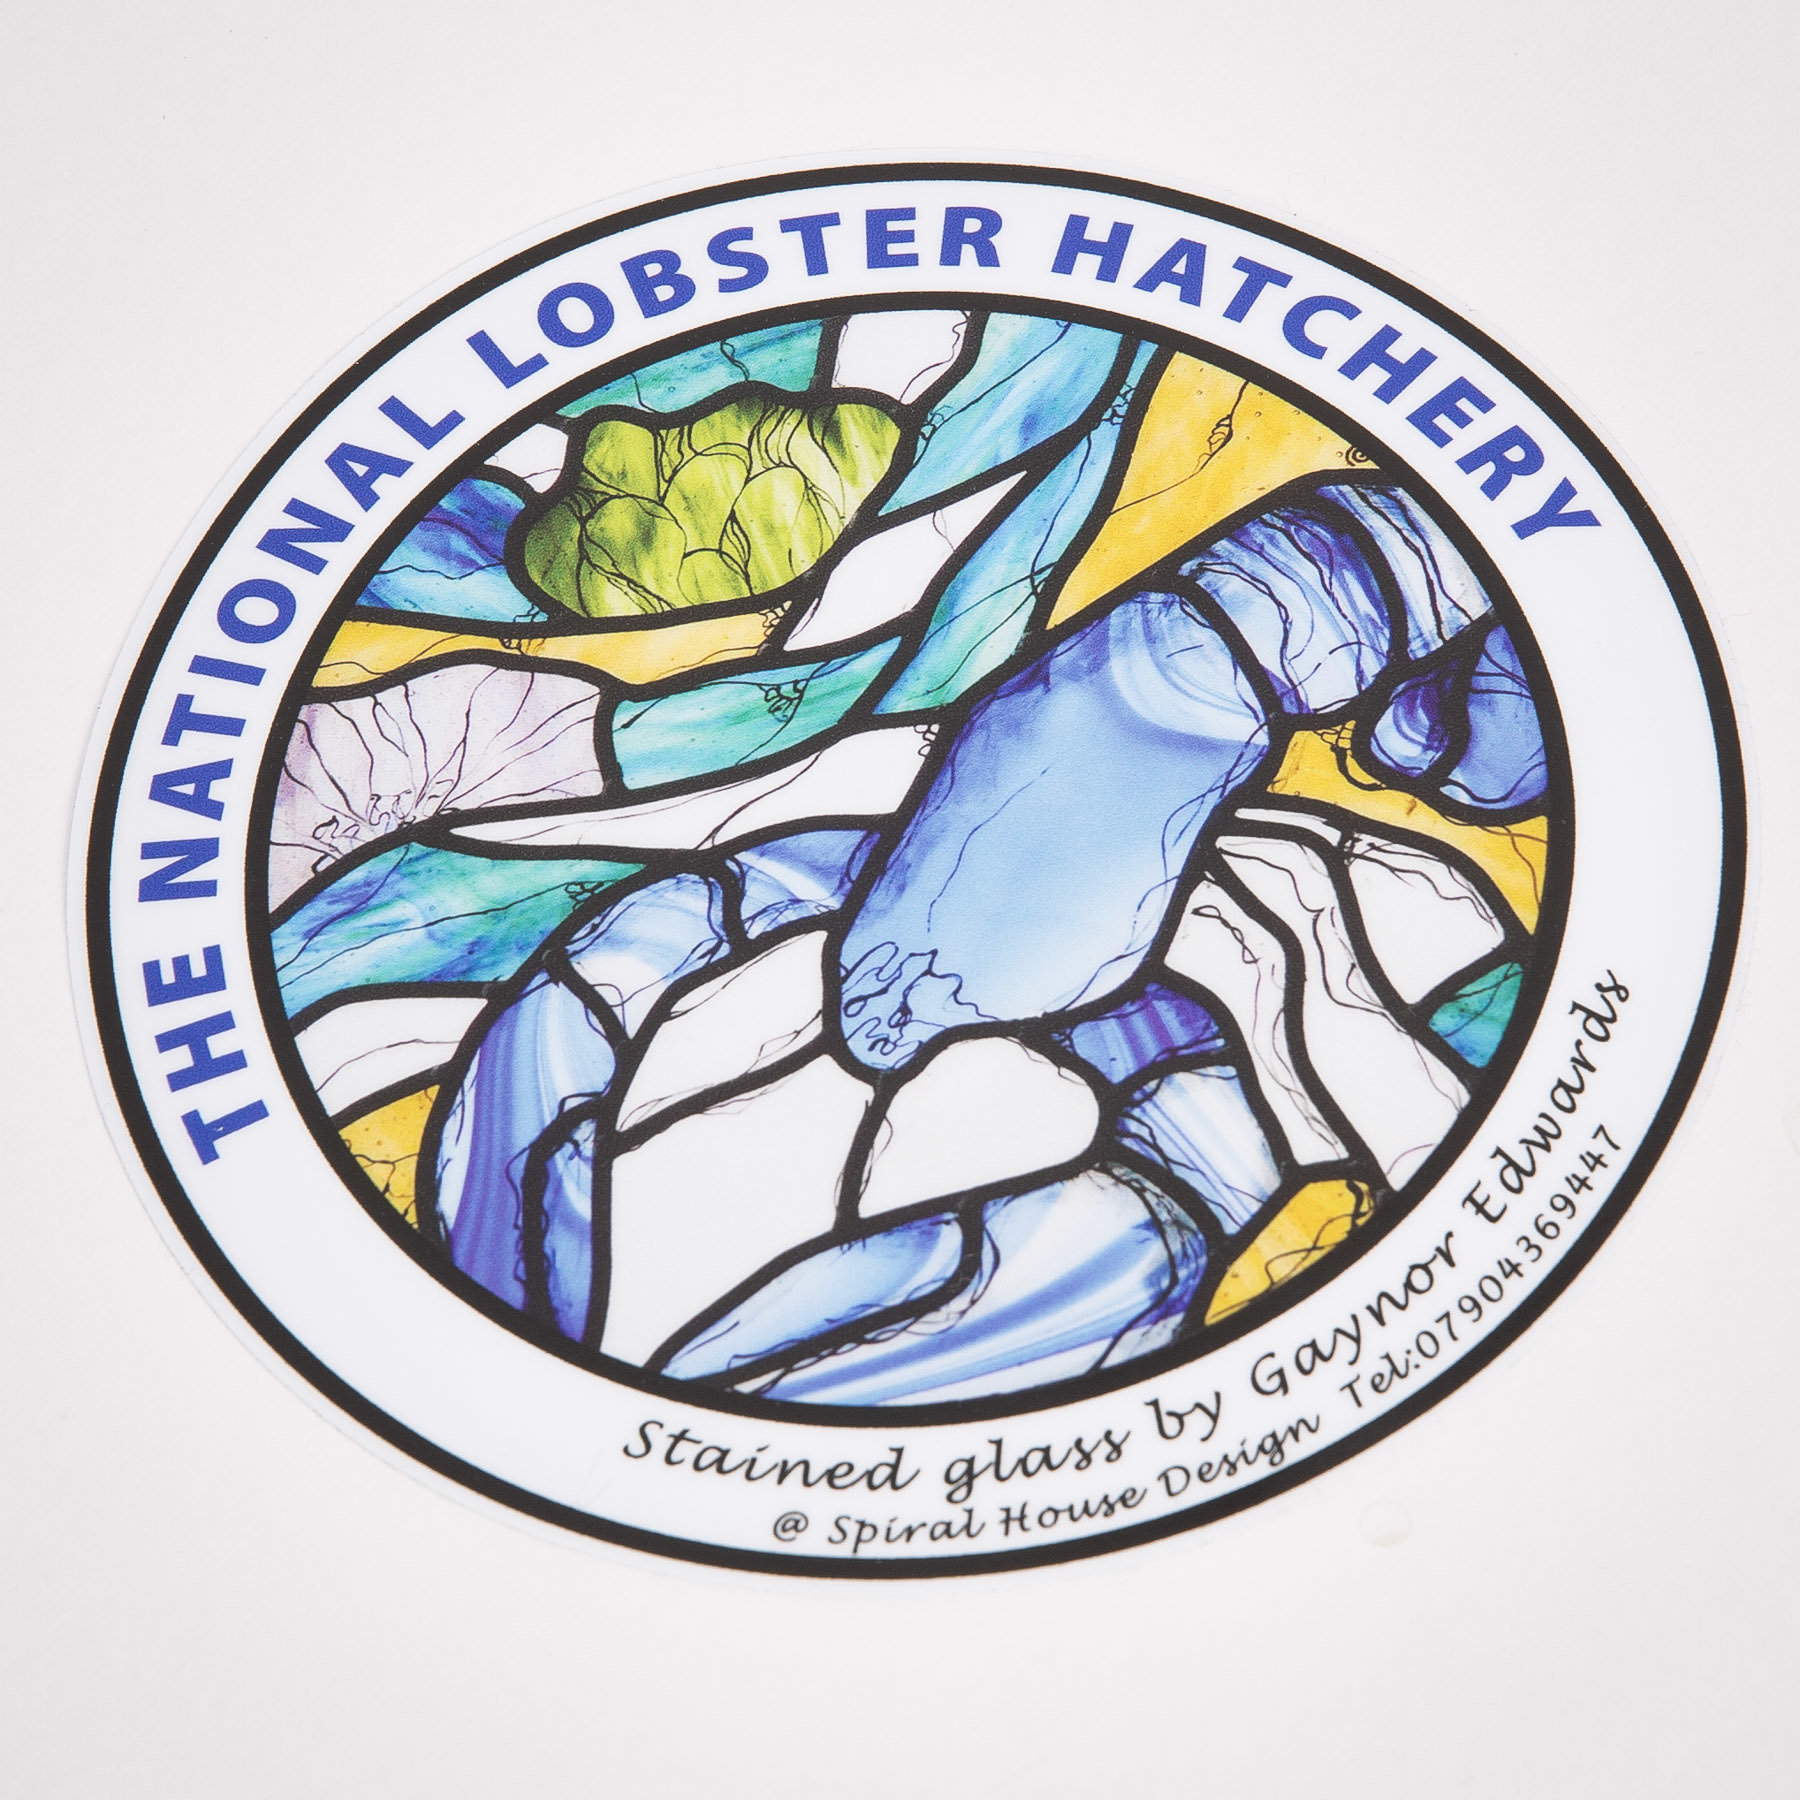 Padstow Lobster Car Sticker - Stained Glass Design 00347